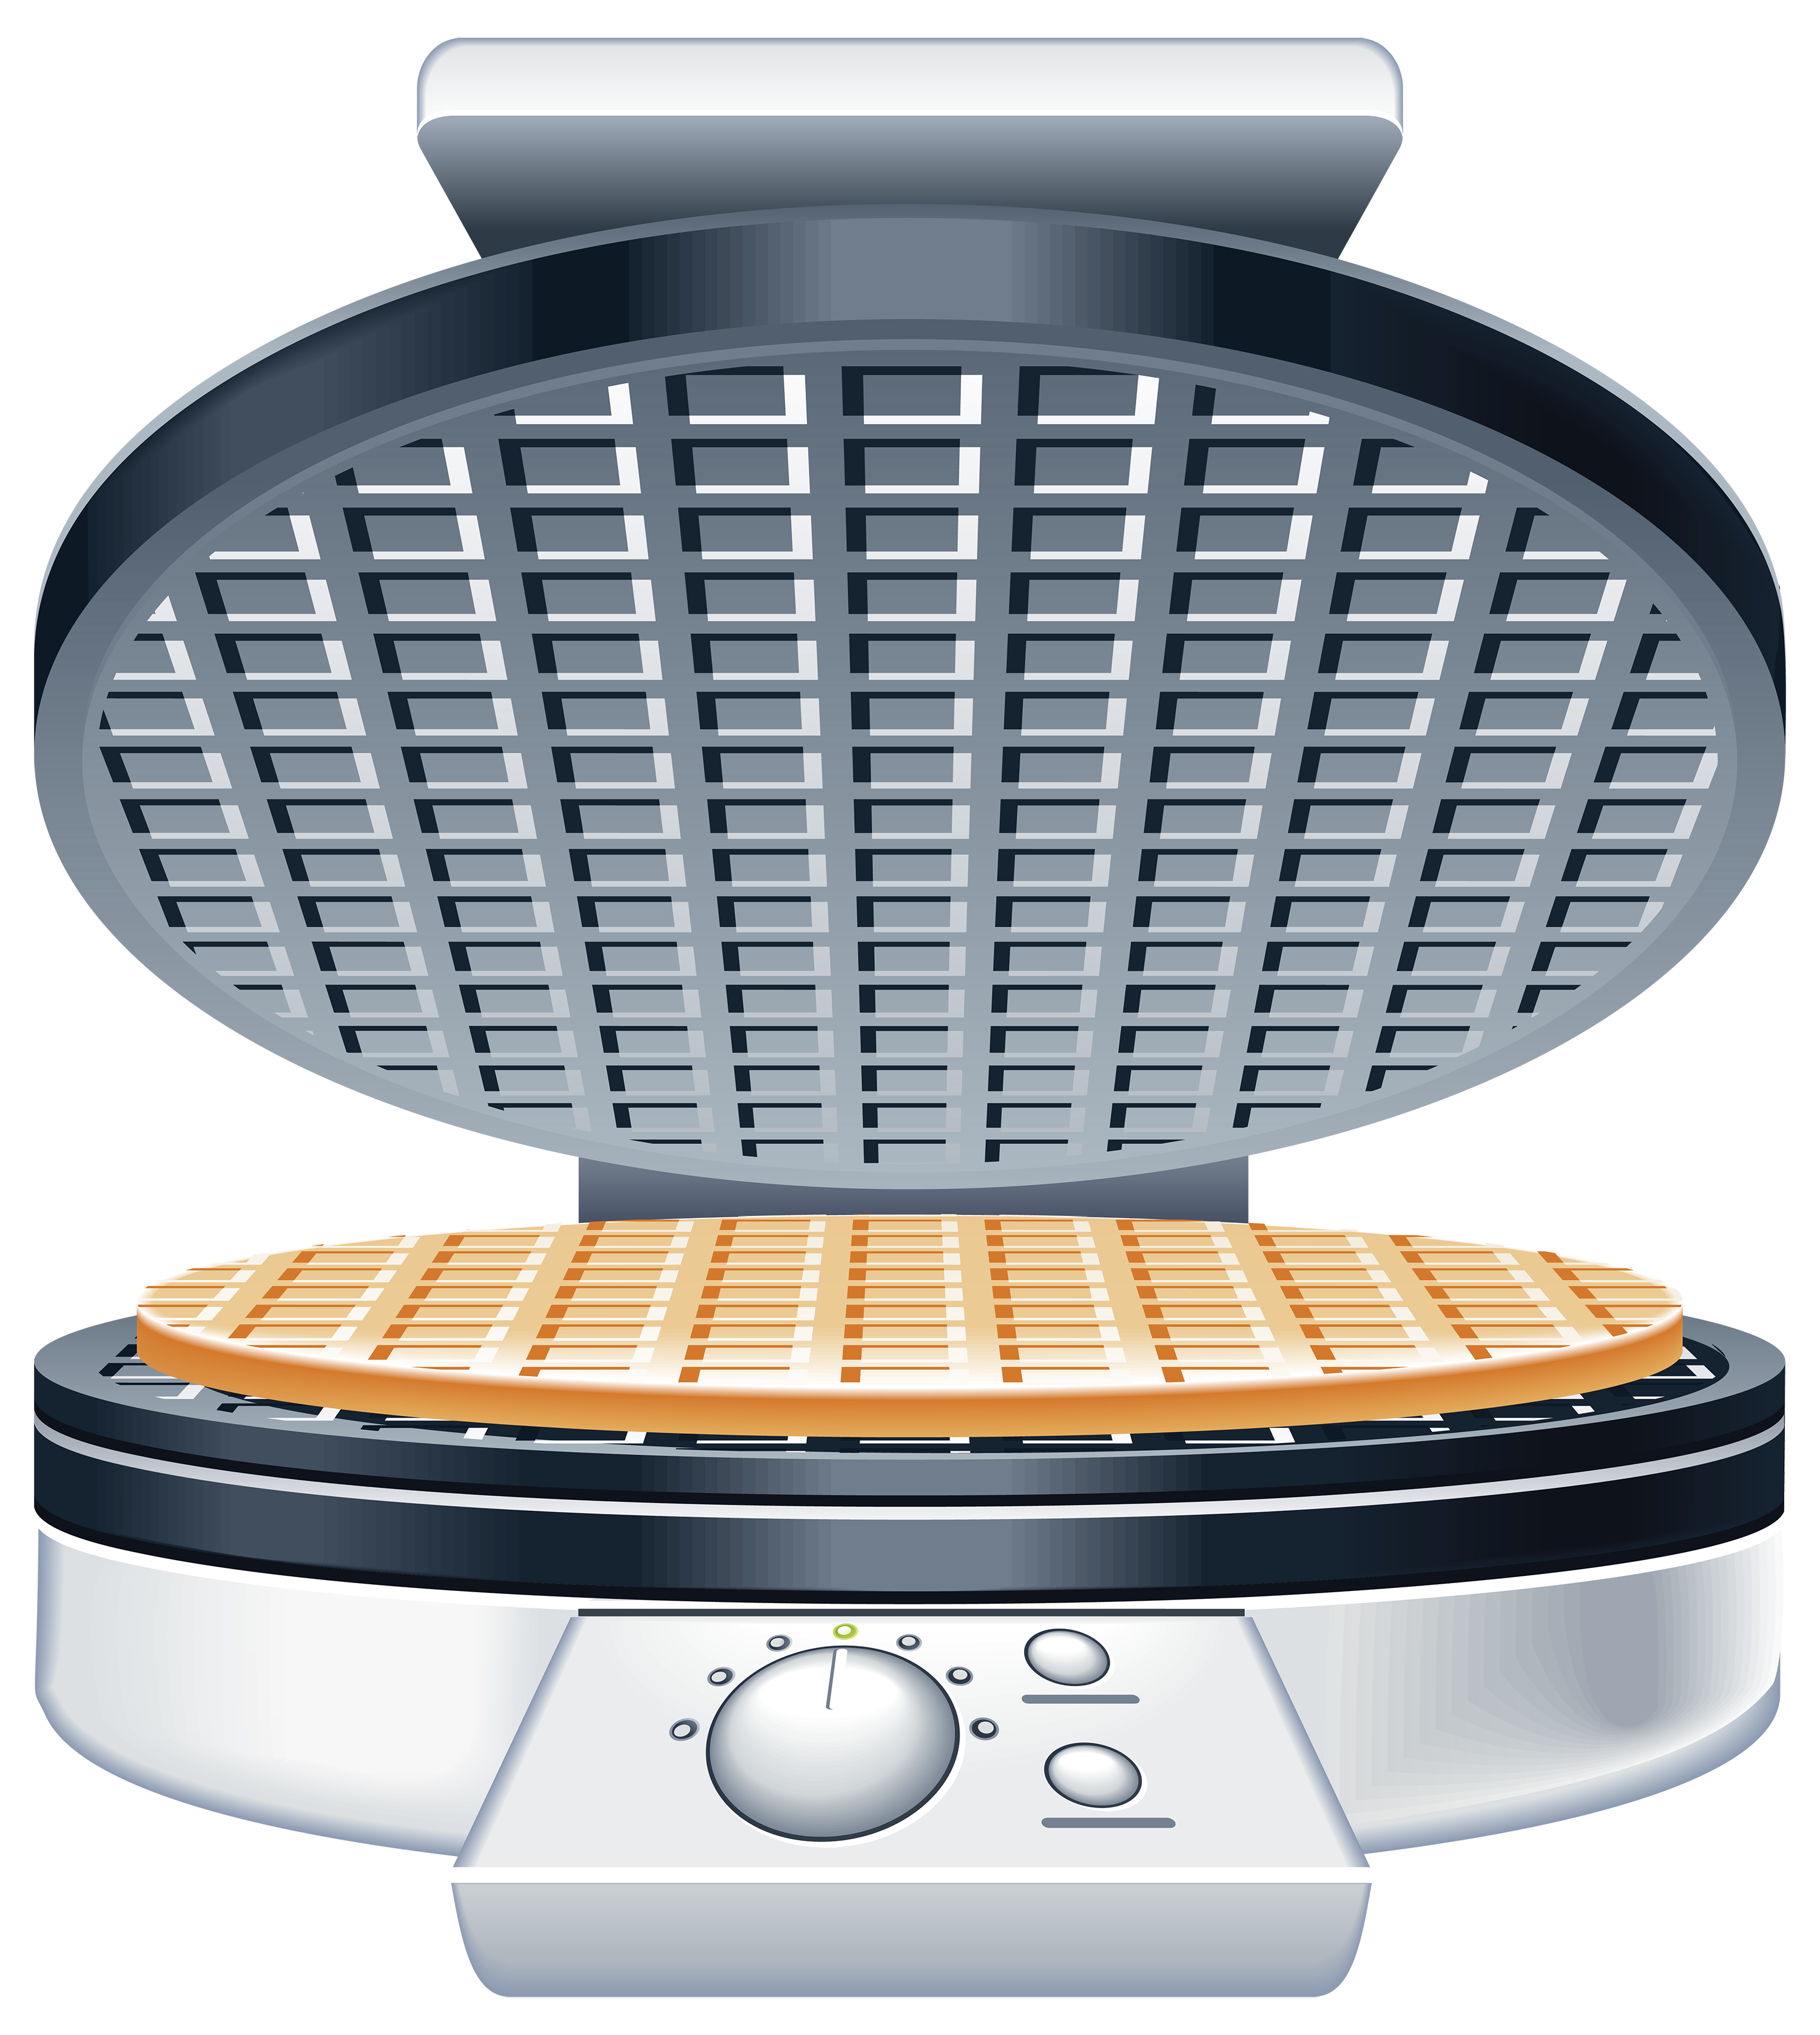 Toaster clipart small appliance. Waffle maker png best